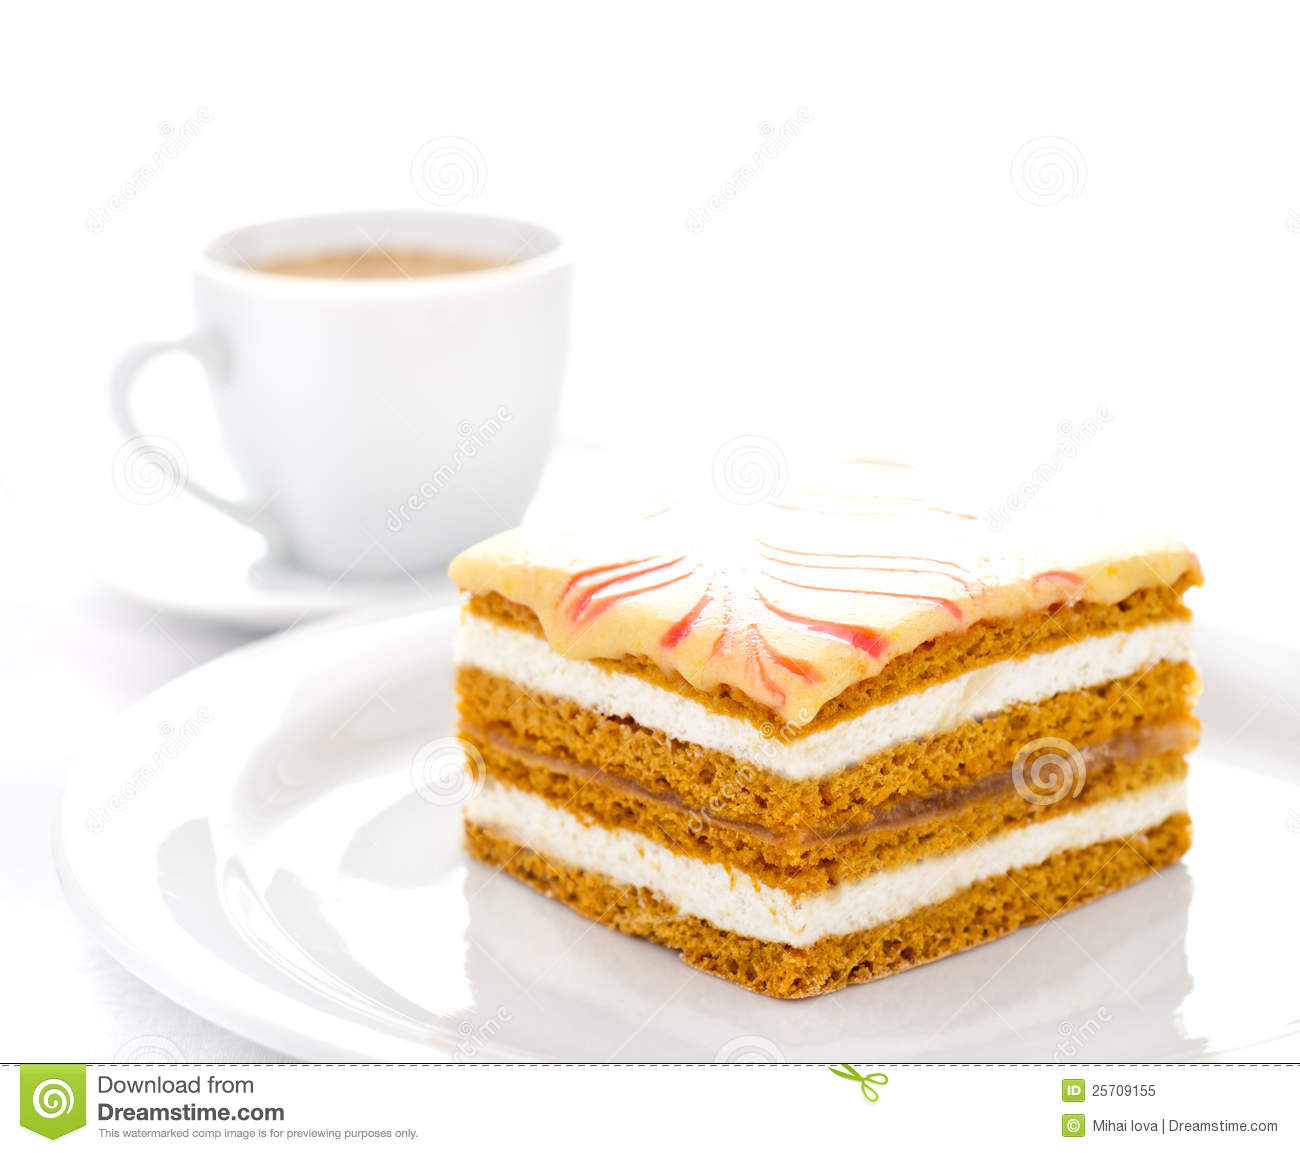 Clipart Of Honey Cake : Honey Cake Royalty Free Stock Photo - Image: 25709155